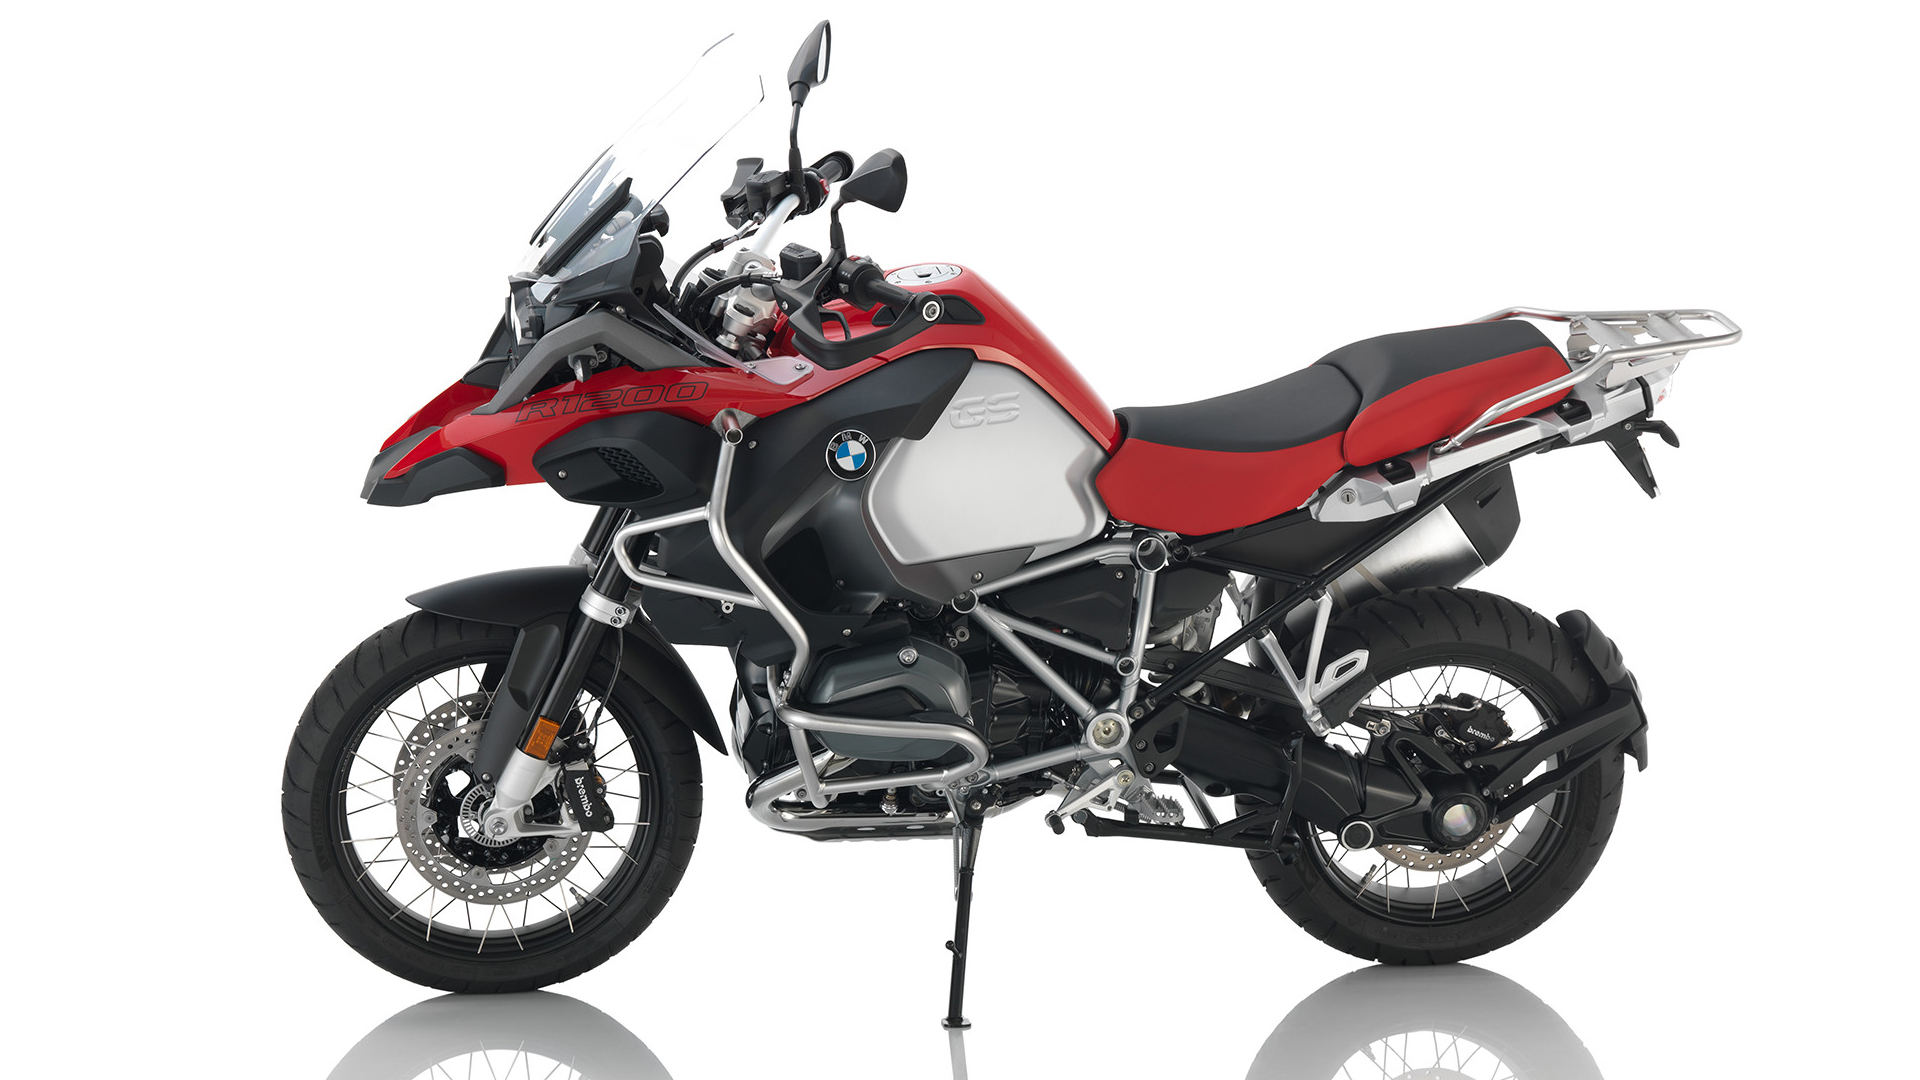 Bmw R 1200 Gsa 2017 Price Mileage Reviews Specification Gallery Overdrive